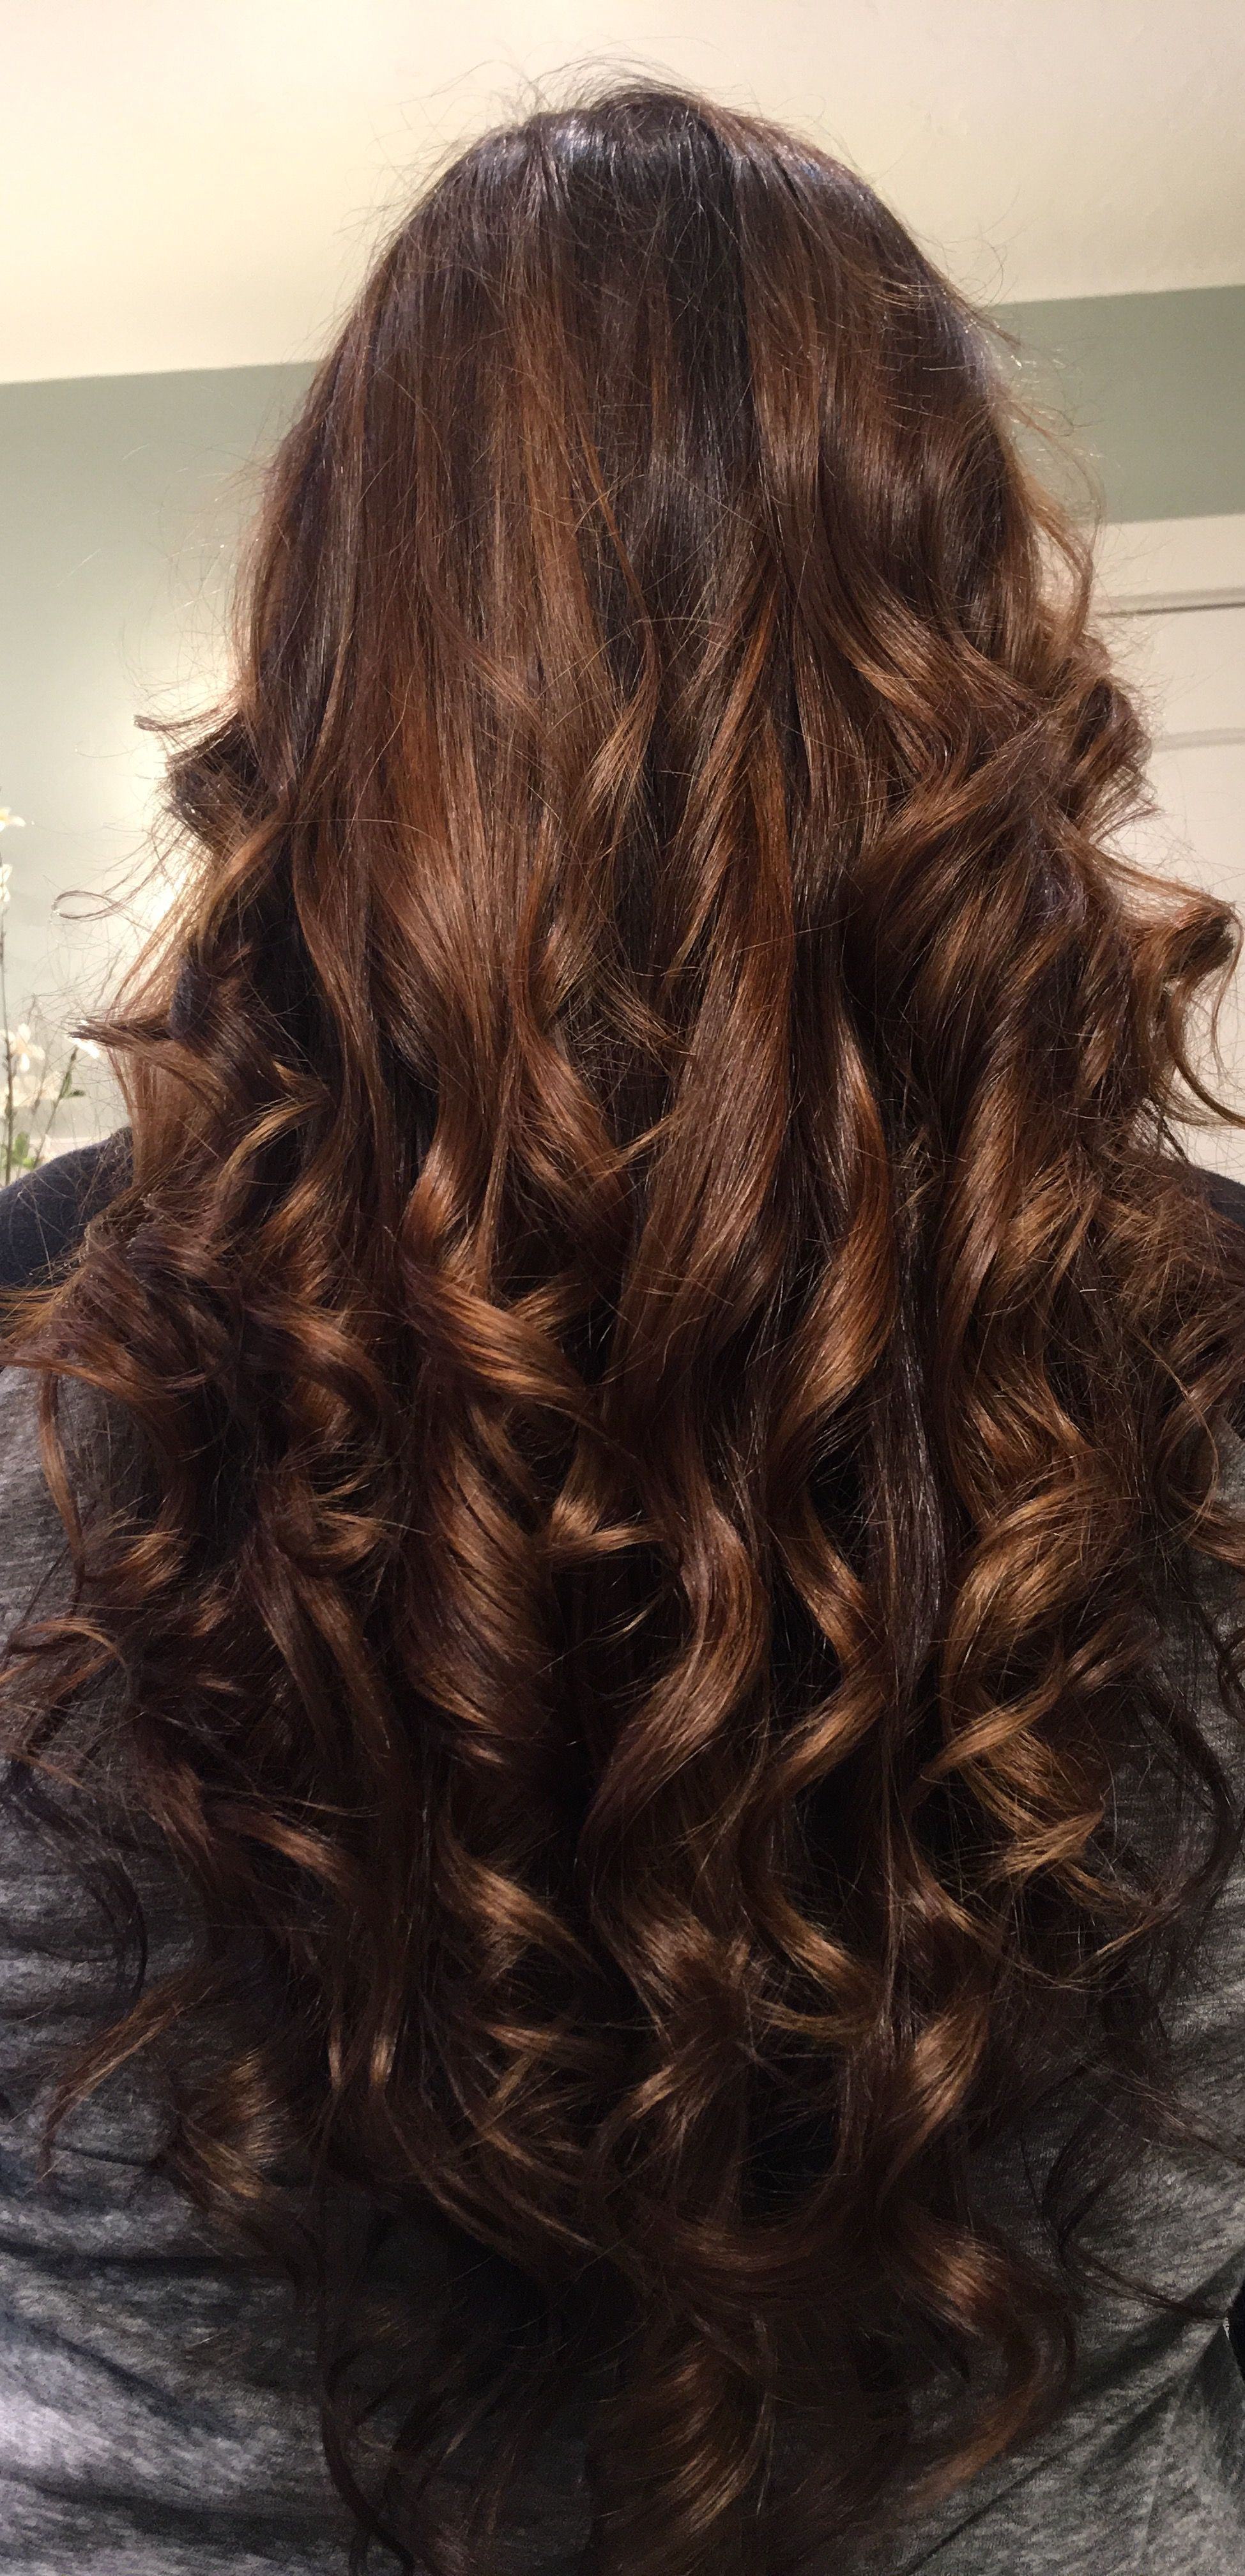 Chocolate Reverse Balayage Sombre 3ch 4n 5ch One N Only Argon Oil Hair Color Argon Oil Hair Hair Styles Reverse Balayage